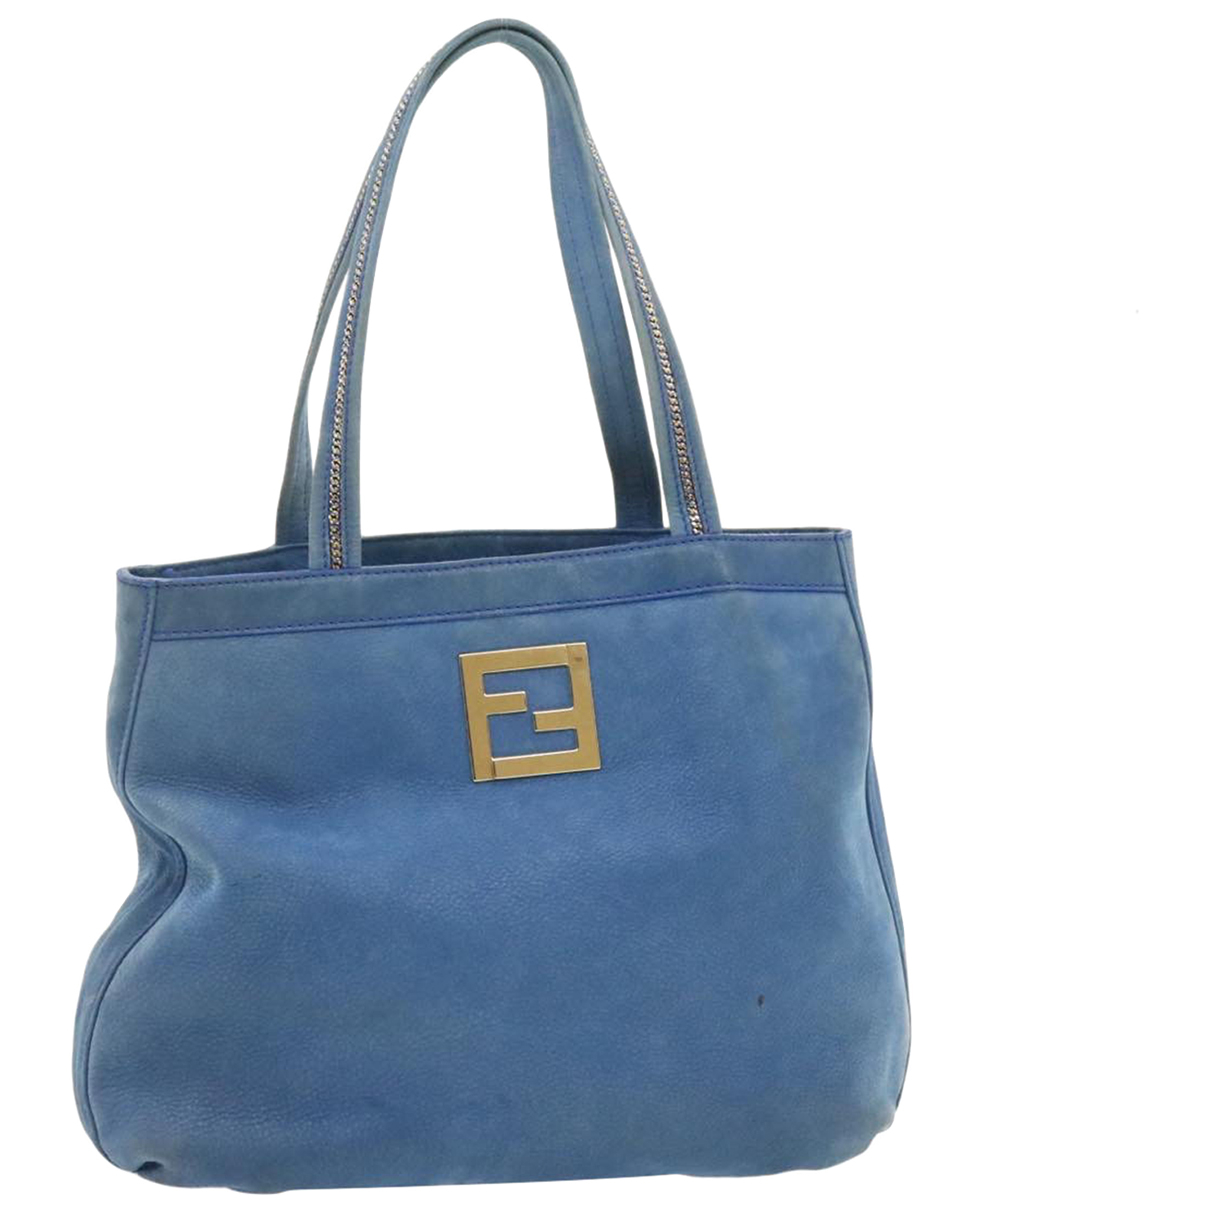 Fendi N Blue Leather handbag for Women N